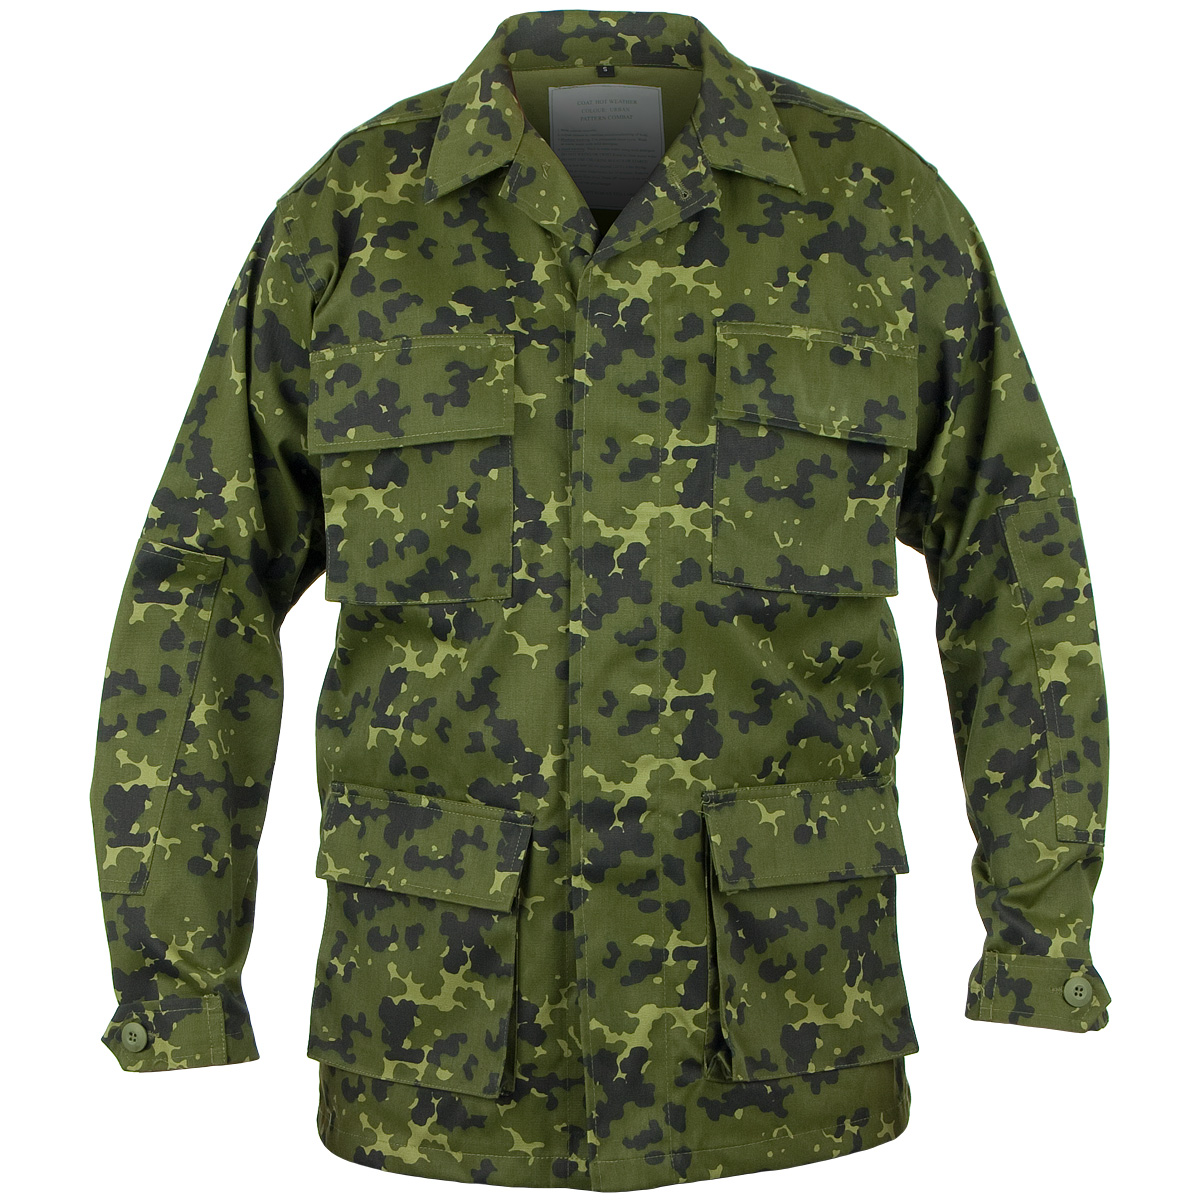 Military Uniform Jacket 40